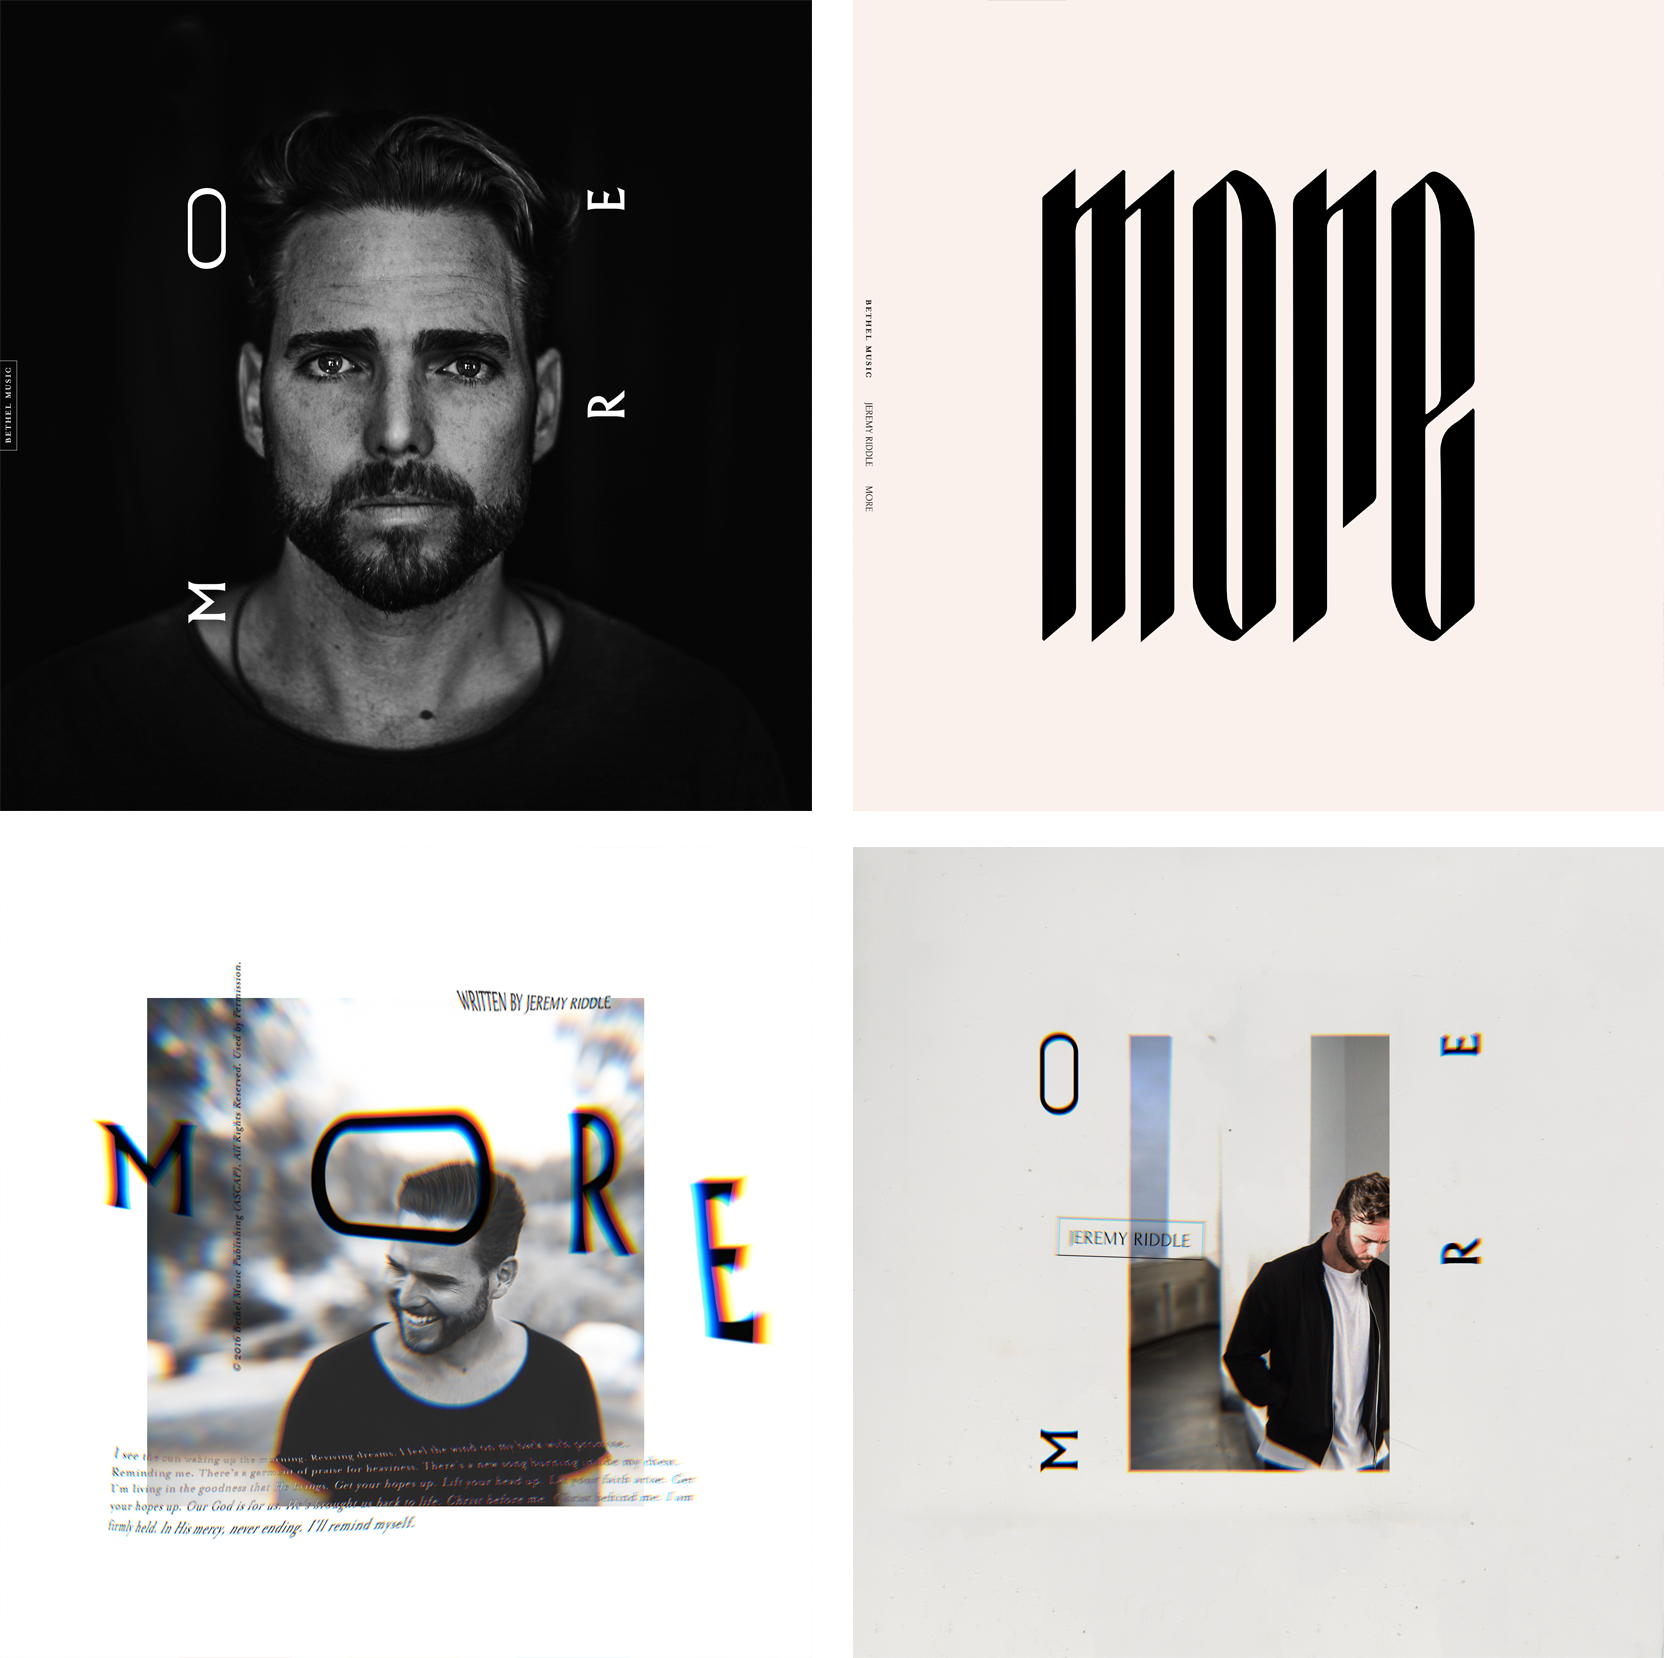 """Initial exploration and concepts for Jeremy Riddle's """"More"""" album artwork."""